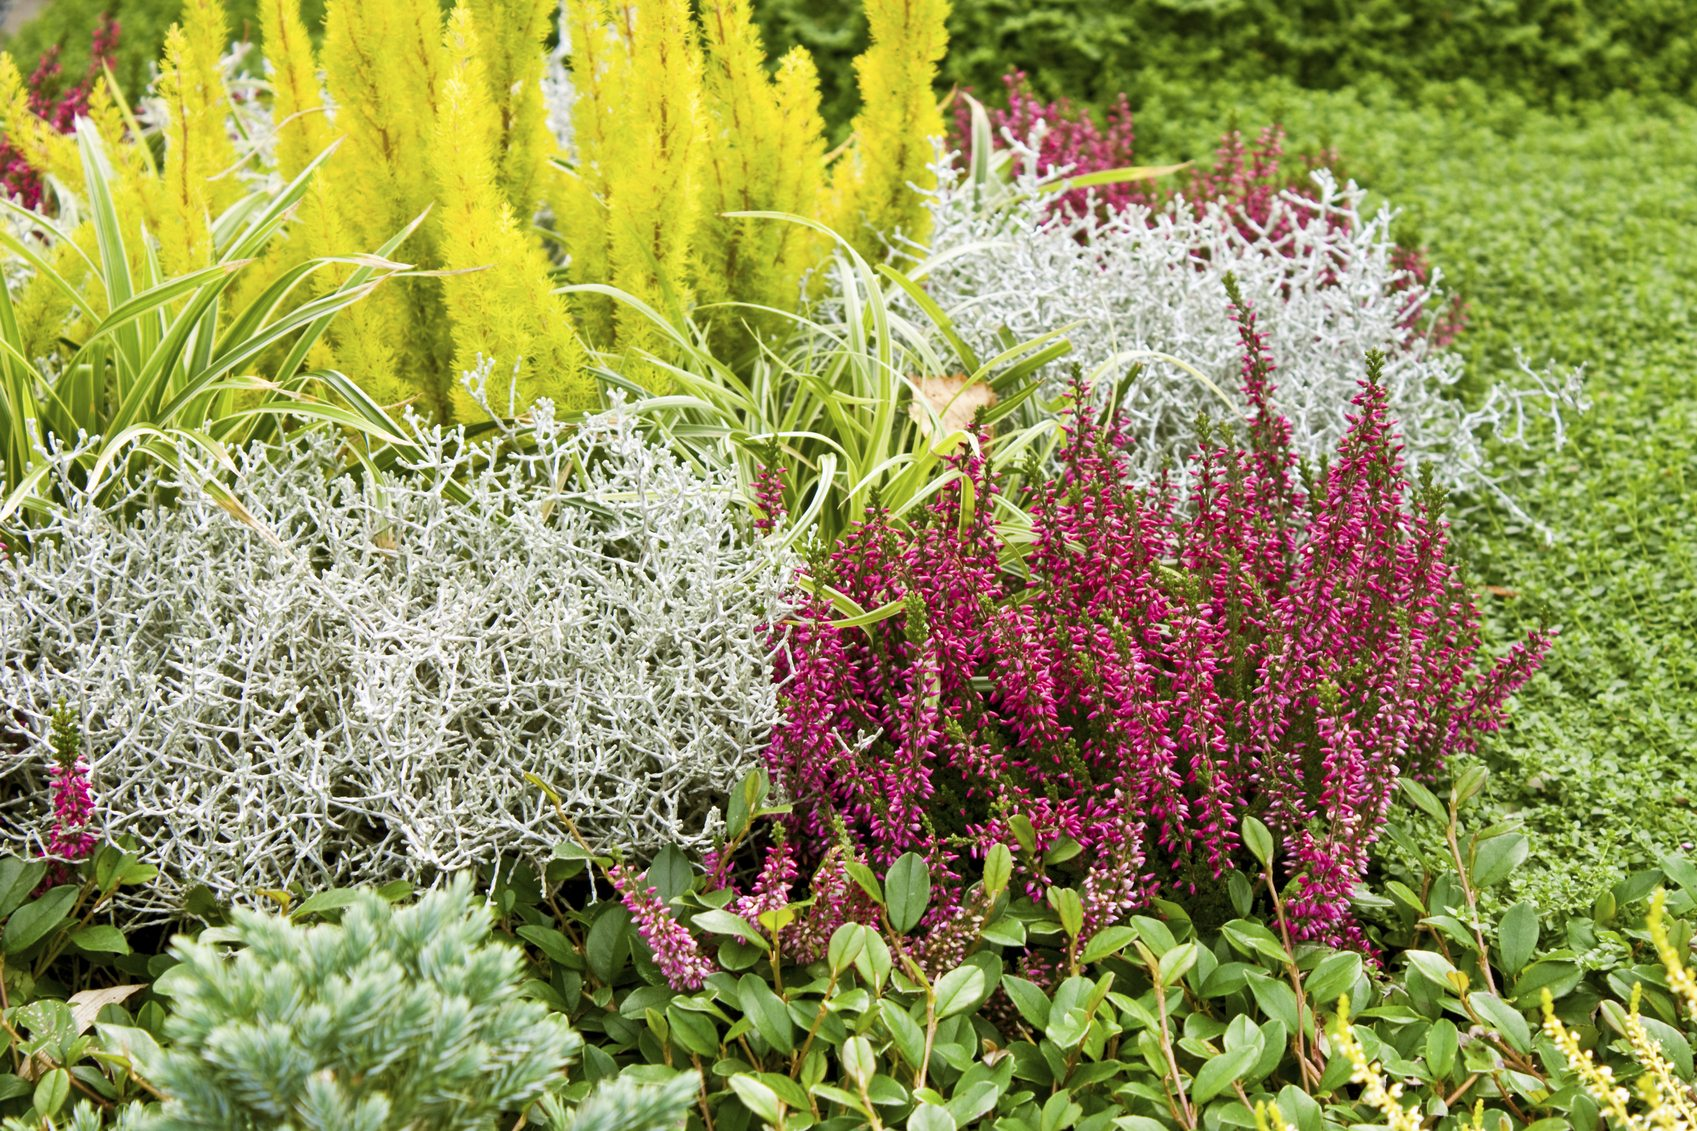 Heather Companion Plants For The Garden Learn What To Plant Next